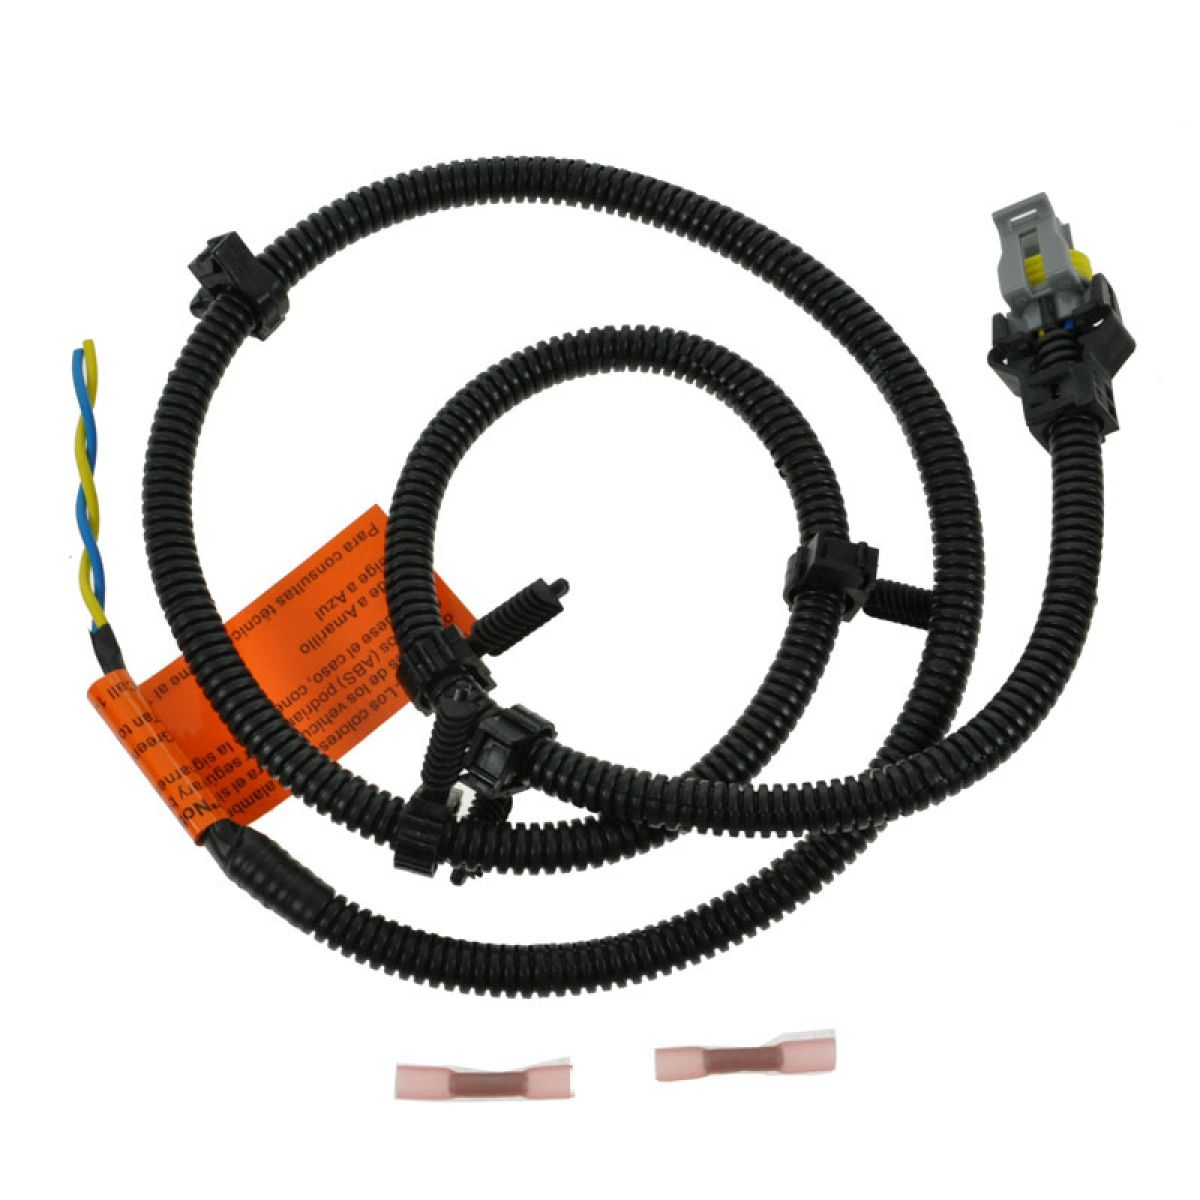 AM 572462664 dorman speed sensor harness with plug & pigtail abs wire wheel  at n-0.co